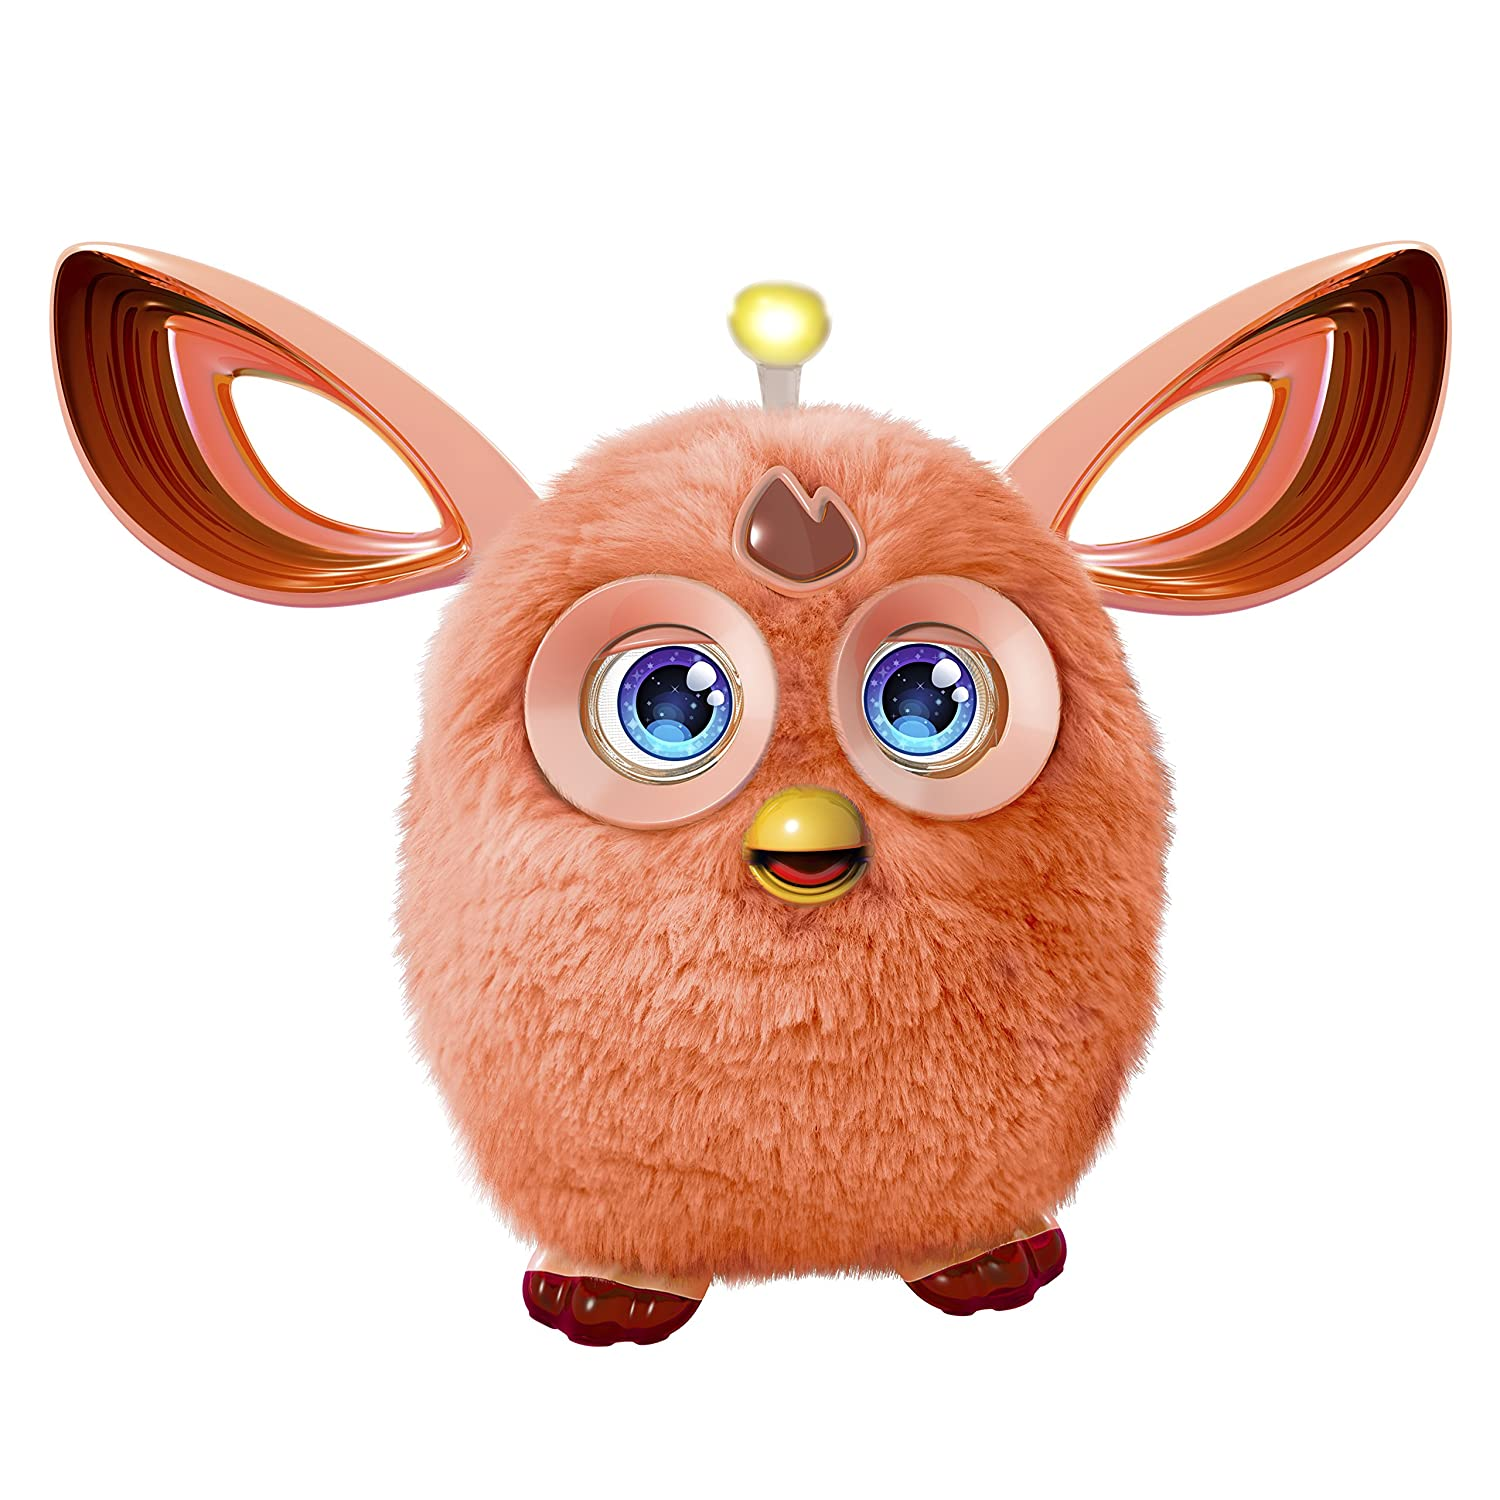 Korallenrot Furby b7153uc60  Connect Coral  Spielzeug